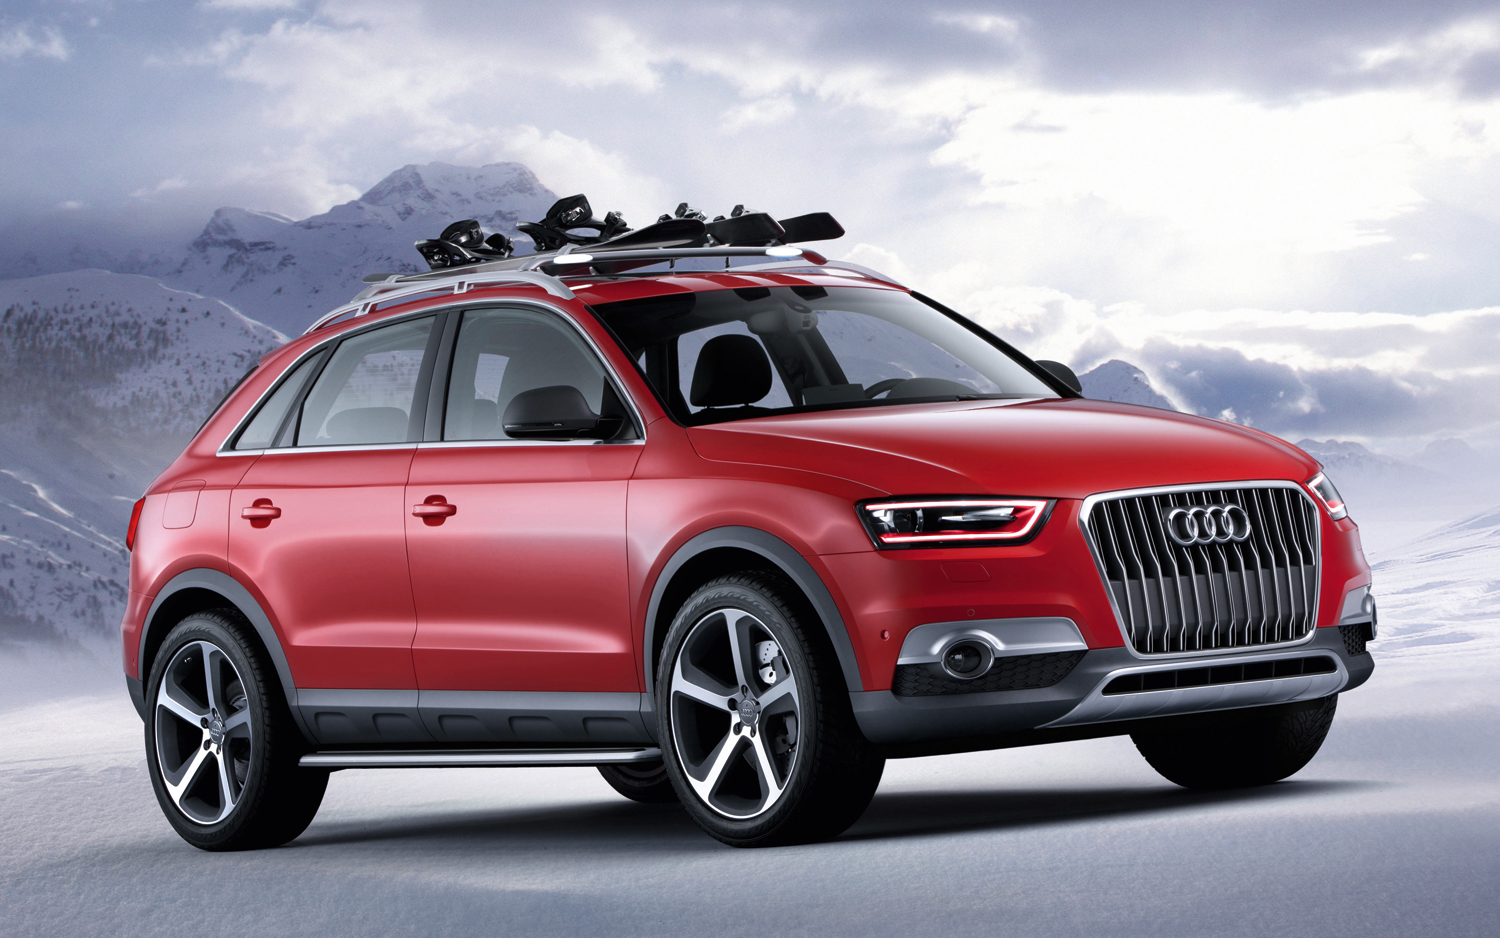 Audi To Show Off Q Concepts Hybrid Bicycle At Worthersee Festival - Audi q3 hybrid